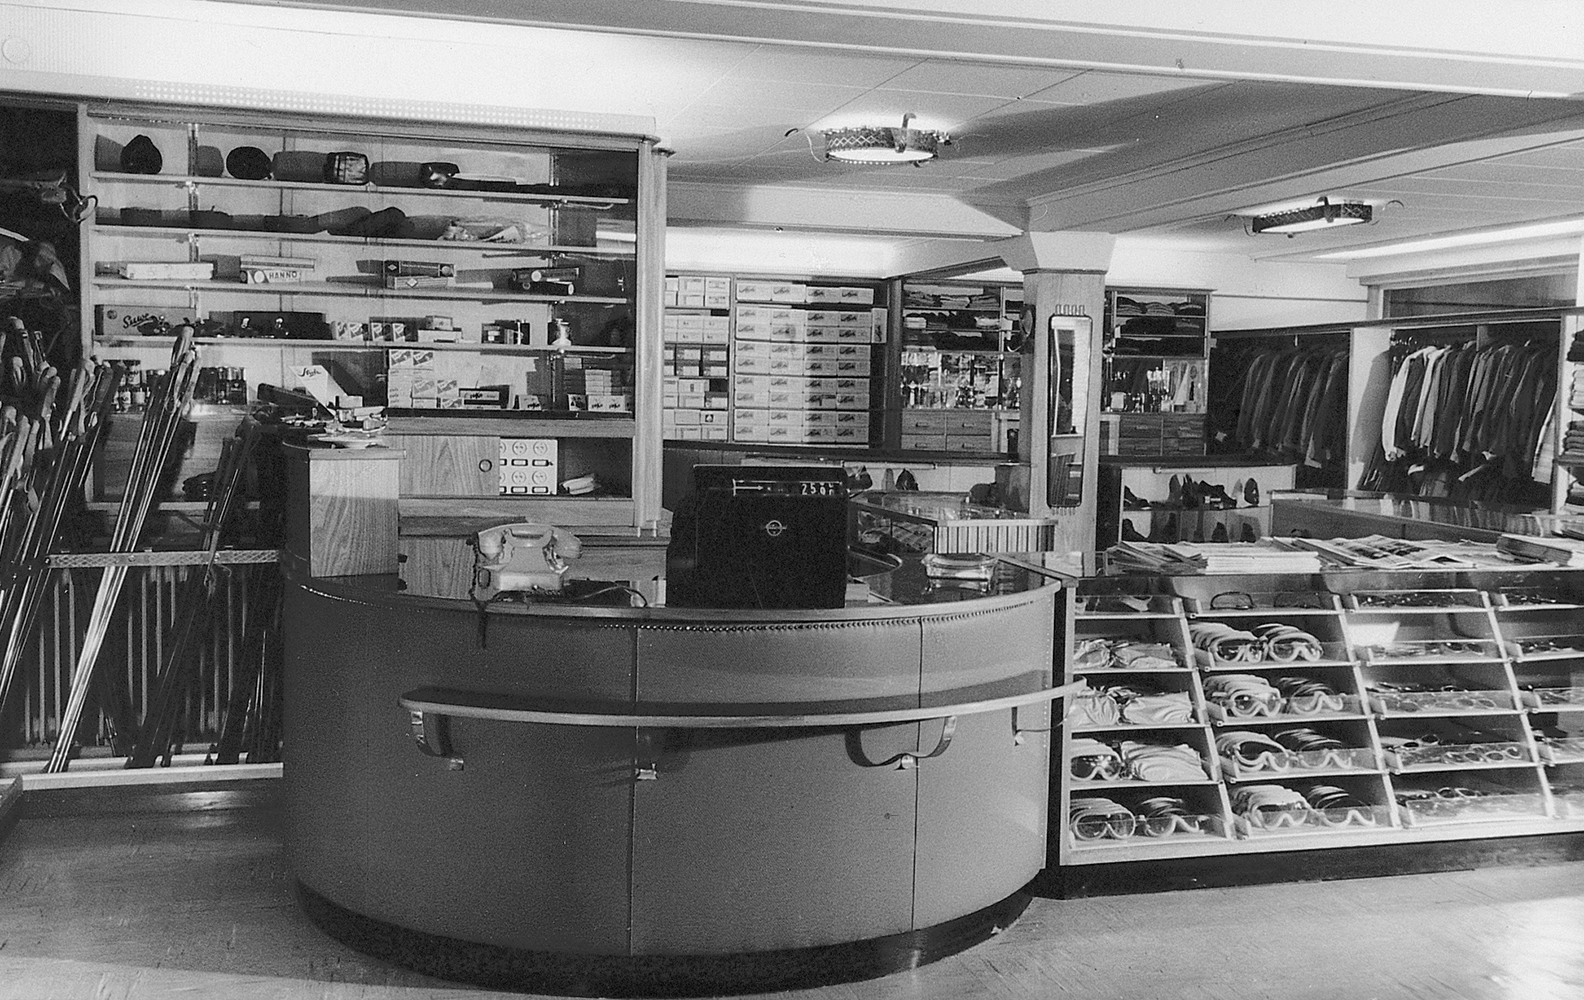 Strolz shop in the old days